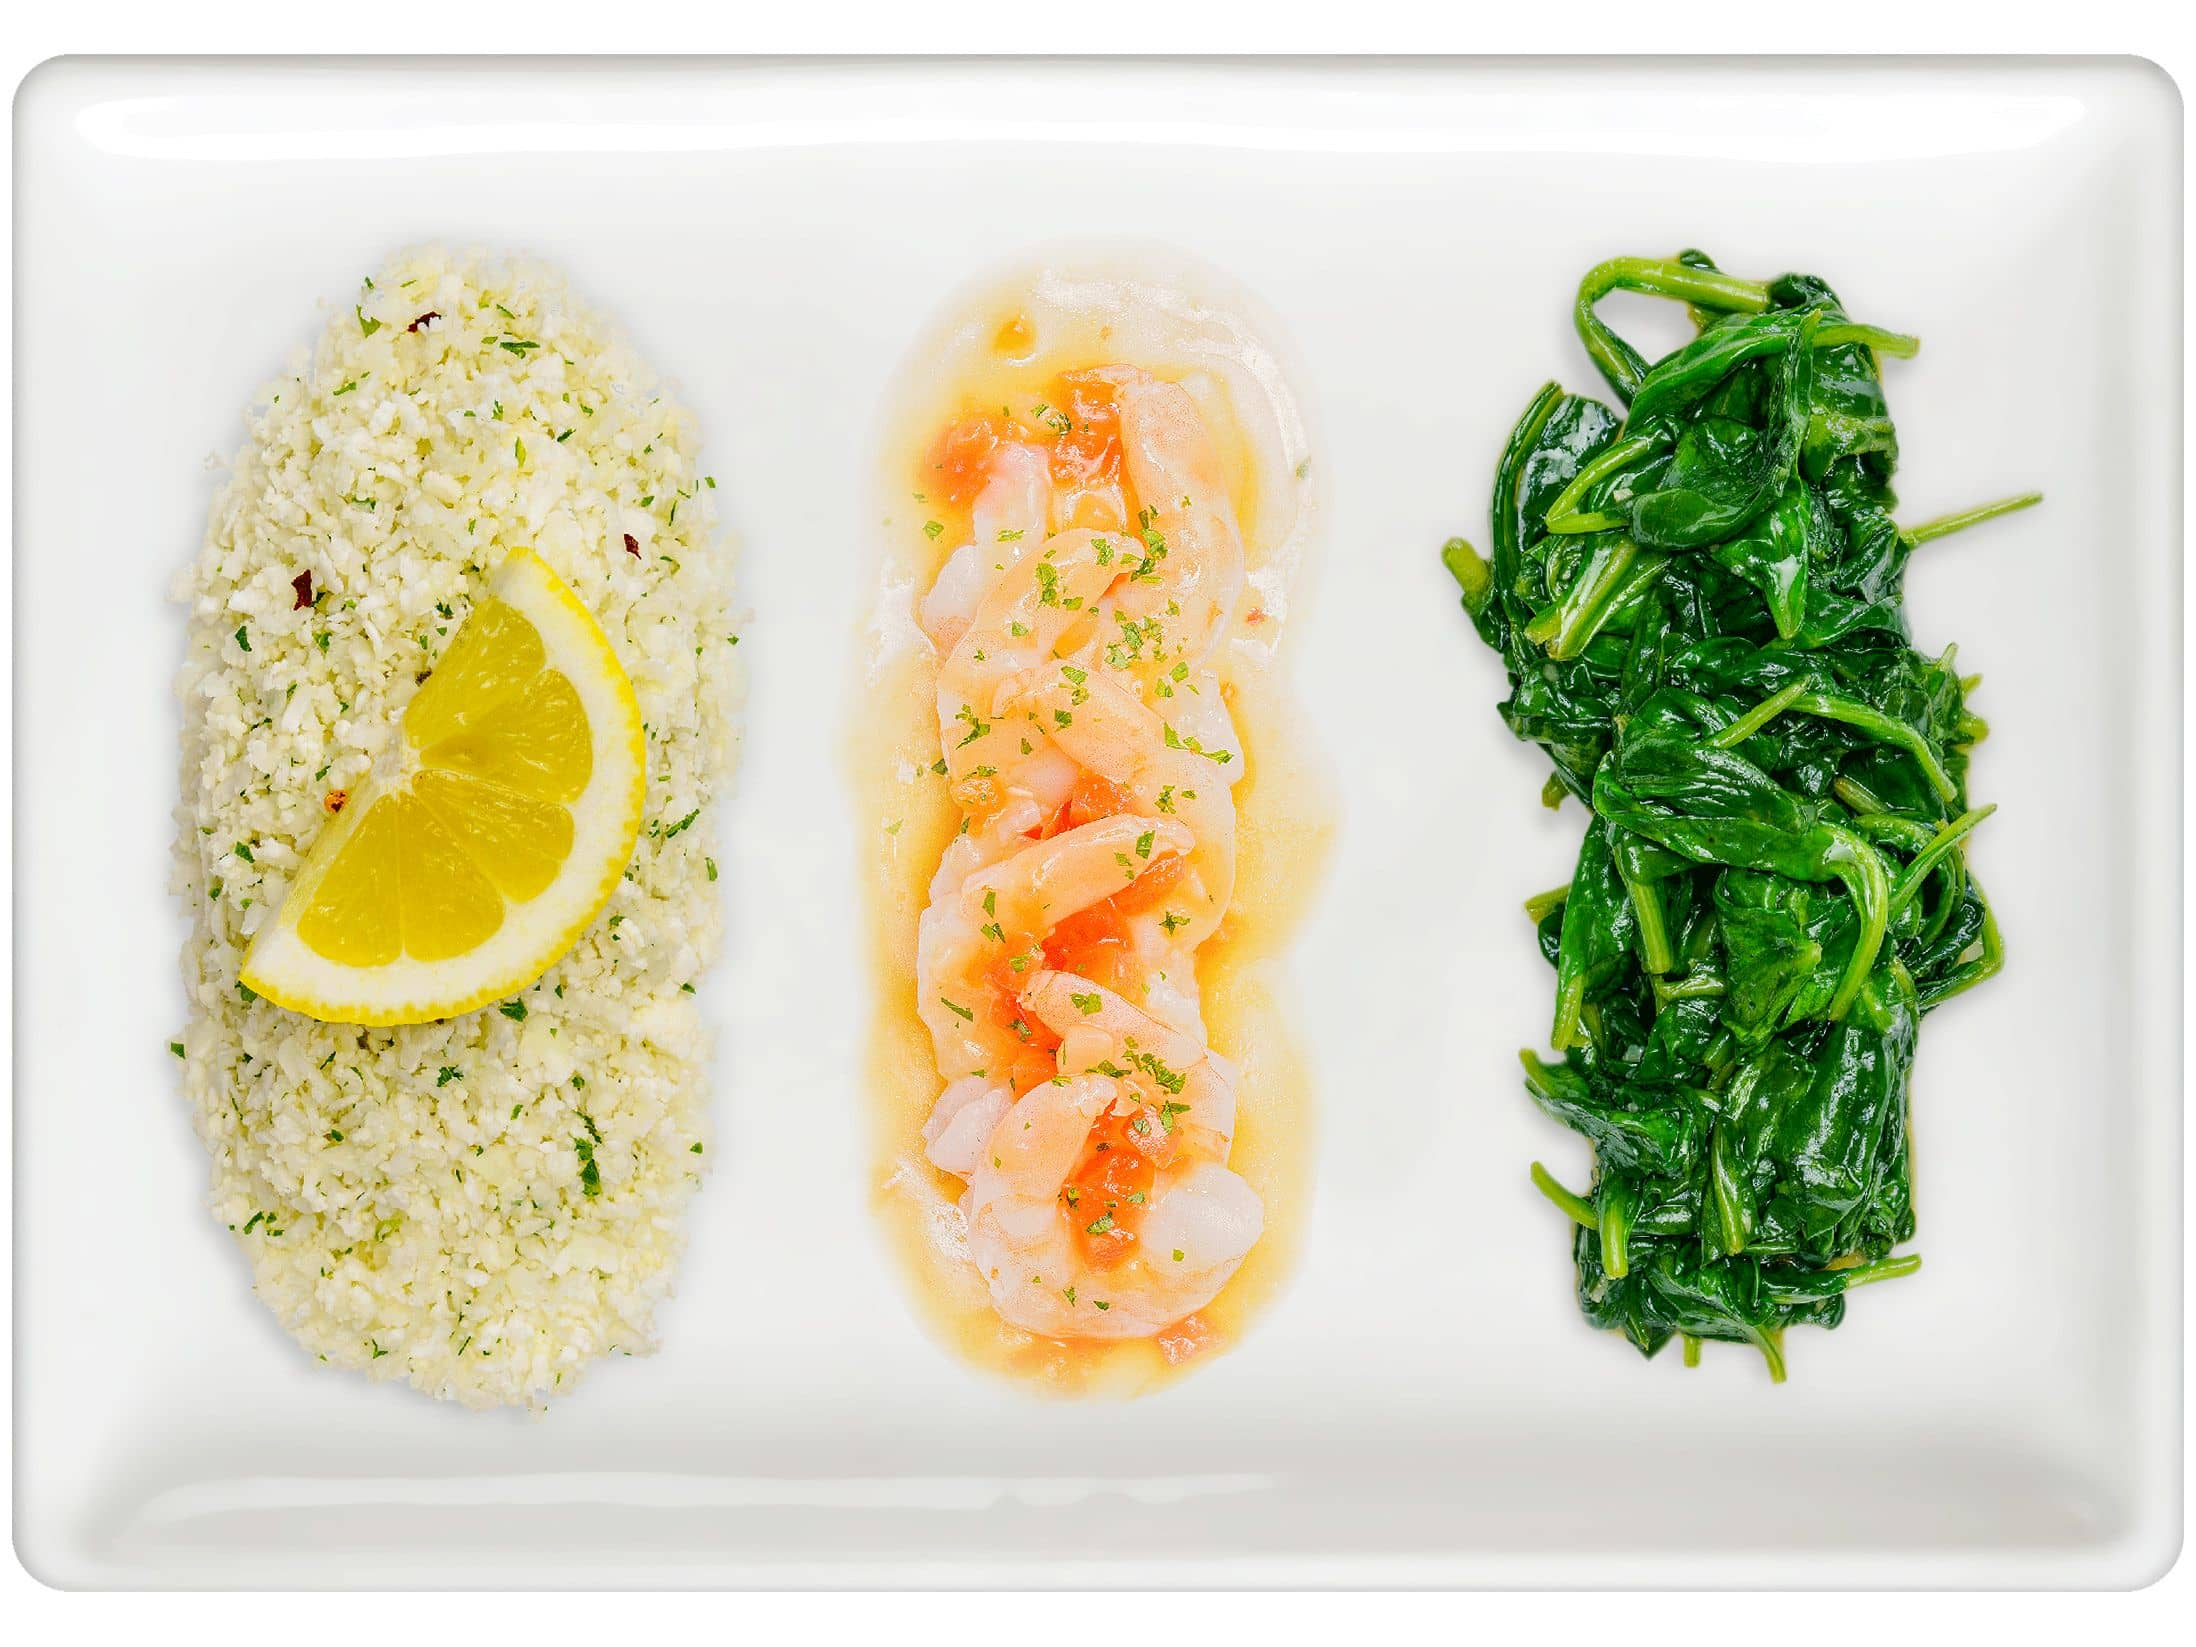 Lemon Cauliflower Rice, Shrimp Scampi, Steamed Spinach